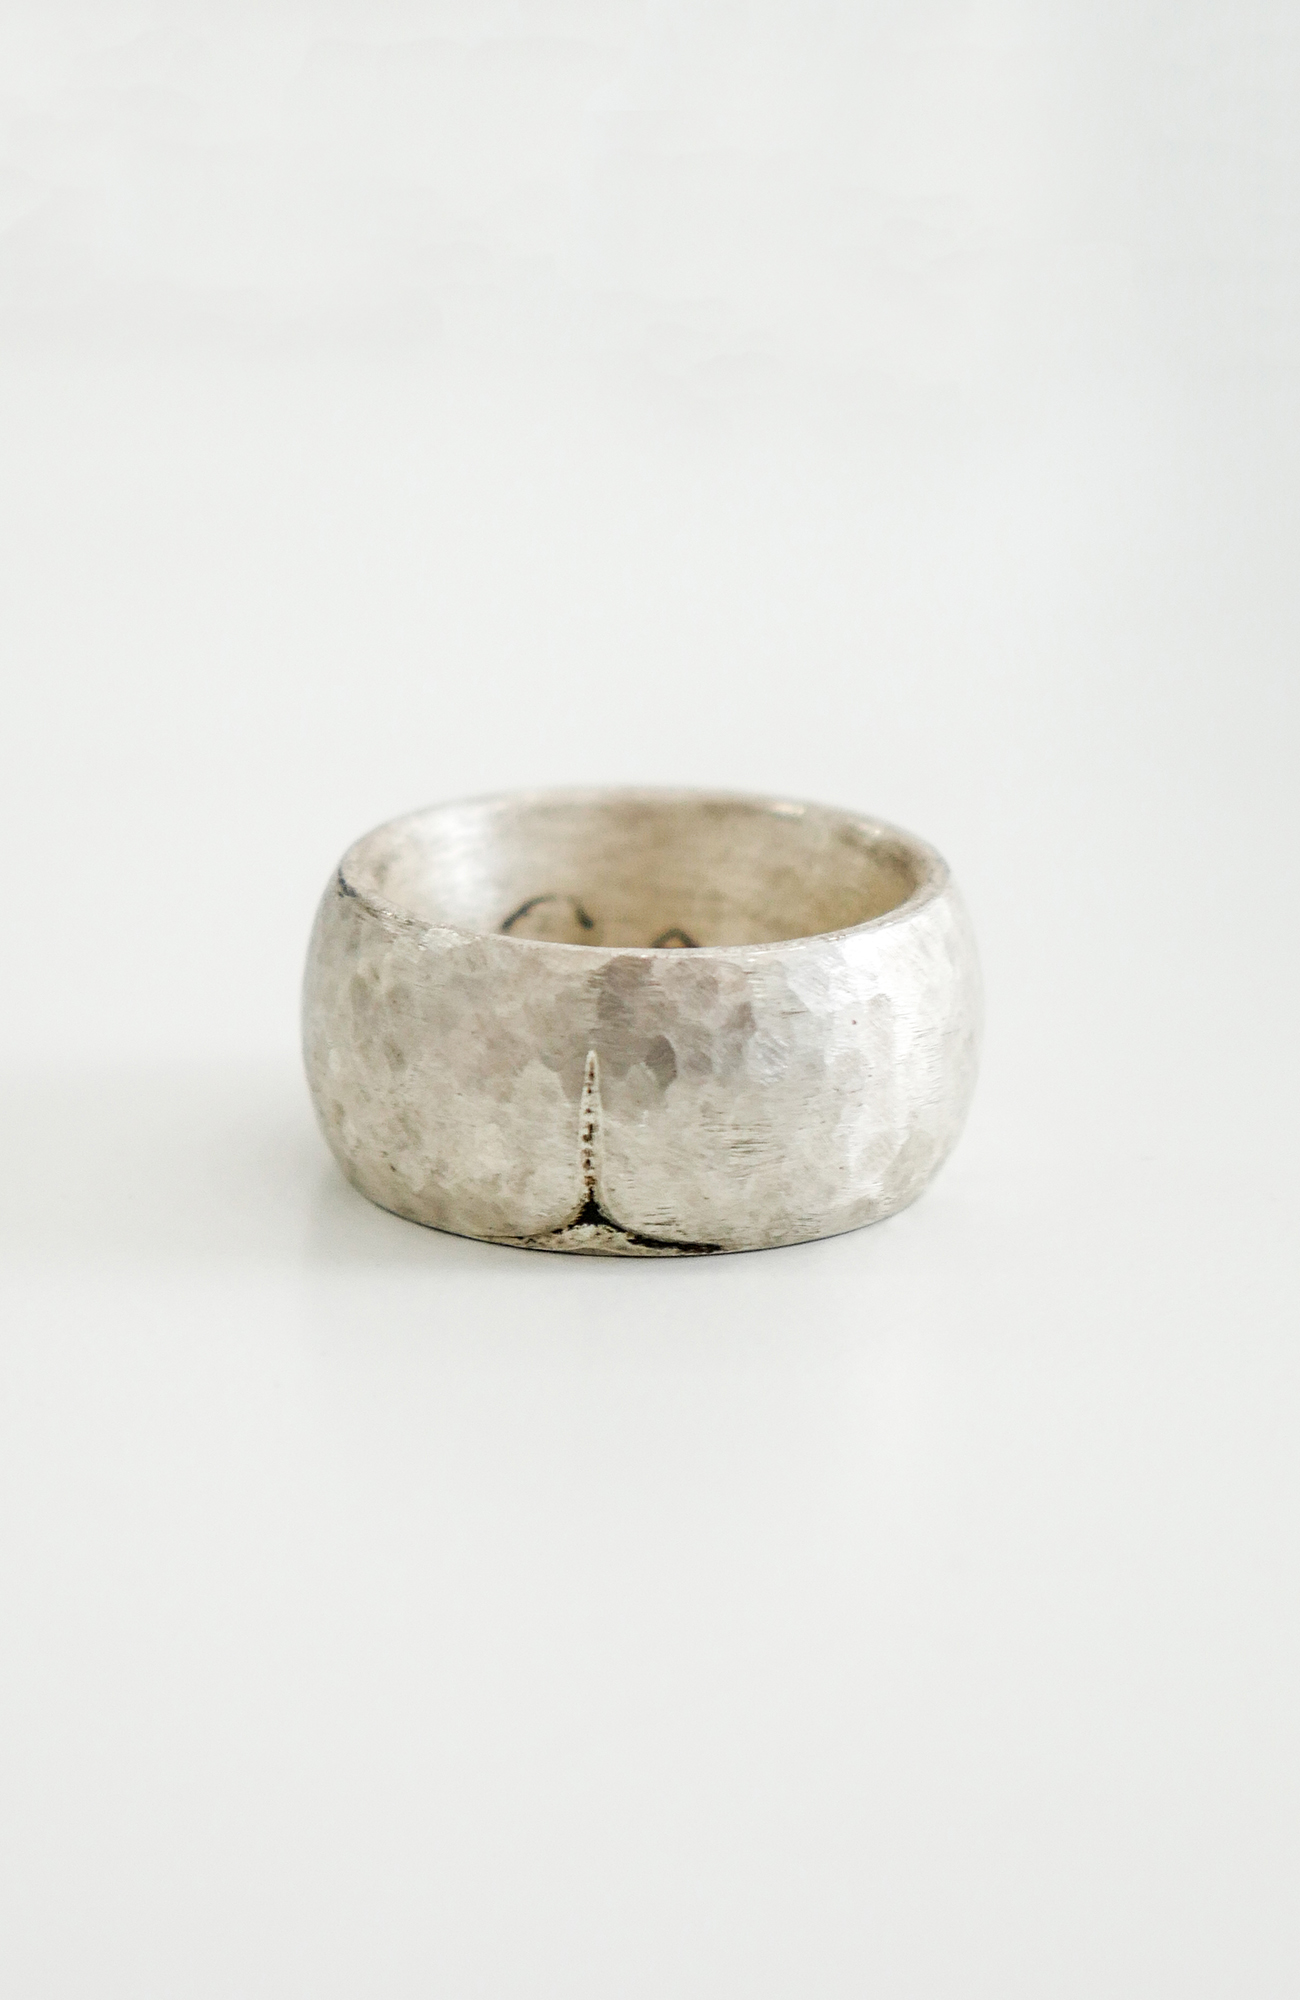 Engraved Trigon Ring, 2019